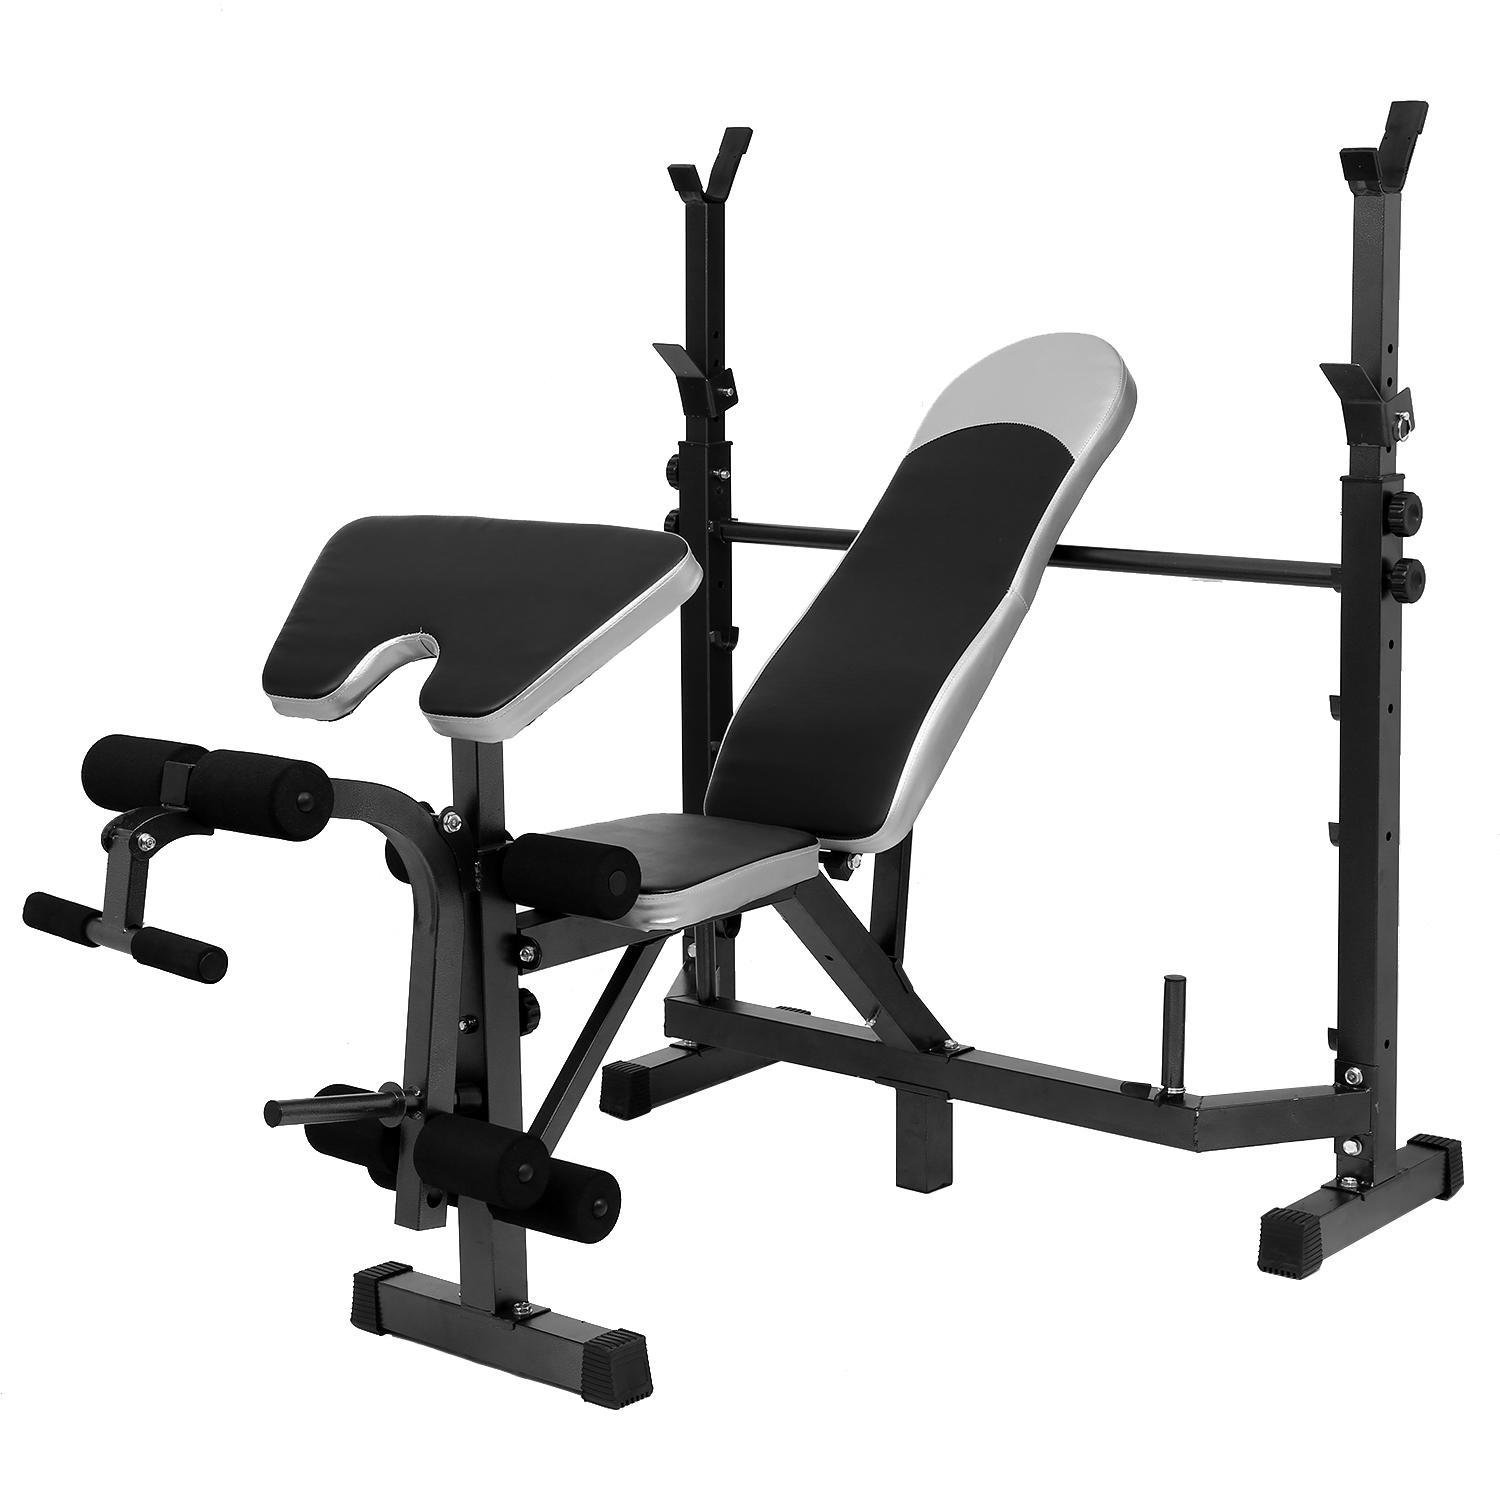 Dtemple Olympic Workout Bench with Squat Rack, US STOCK by Dtemple